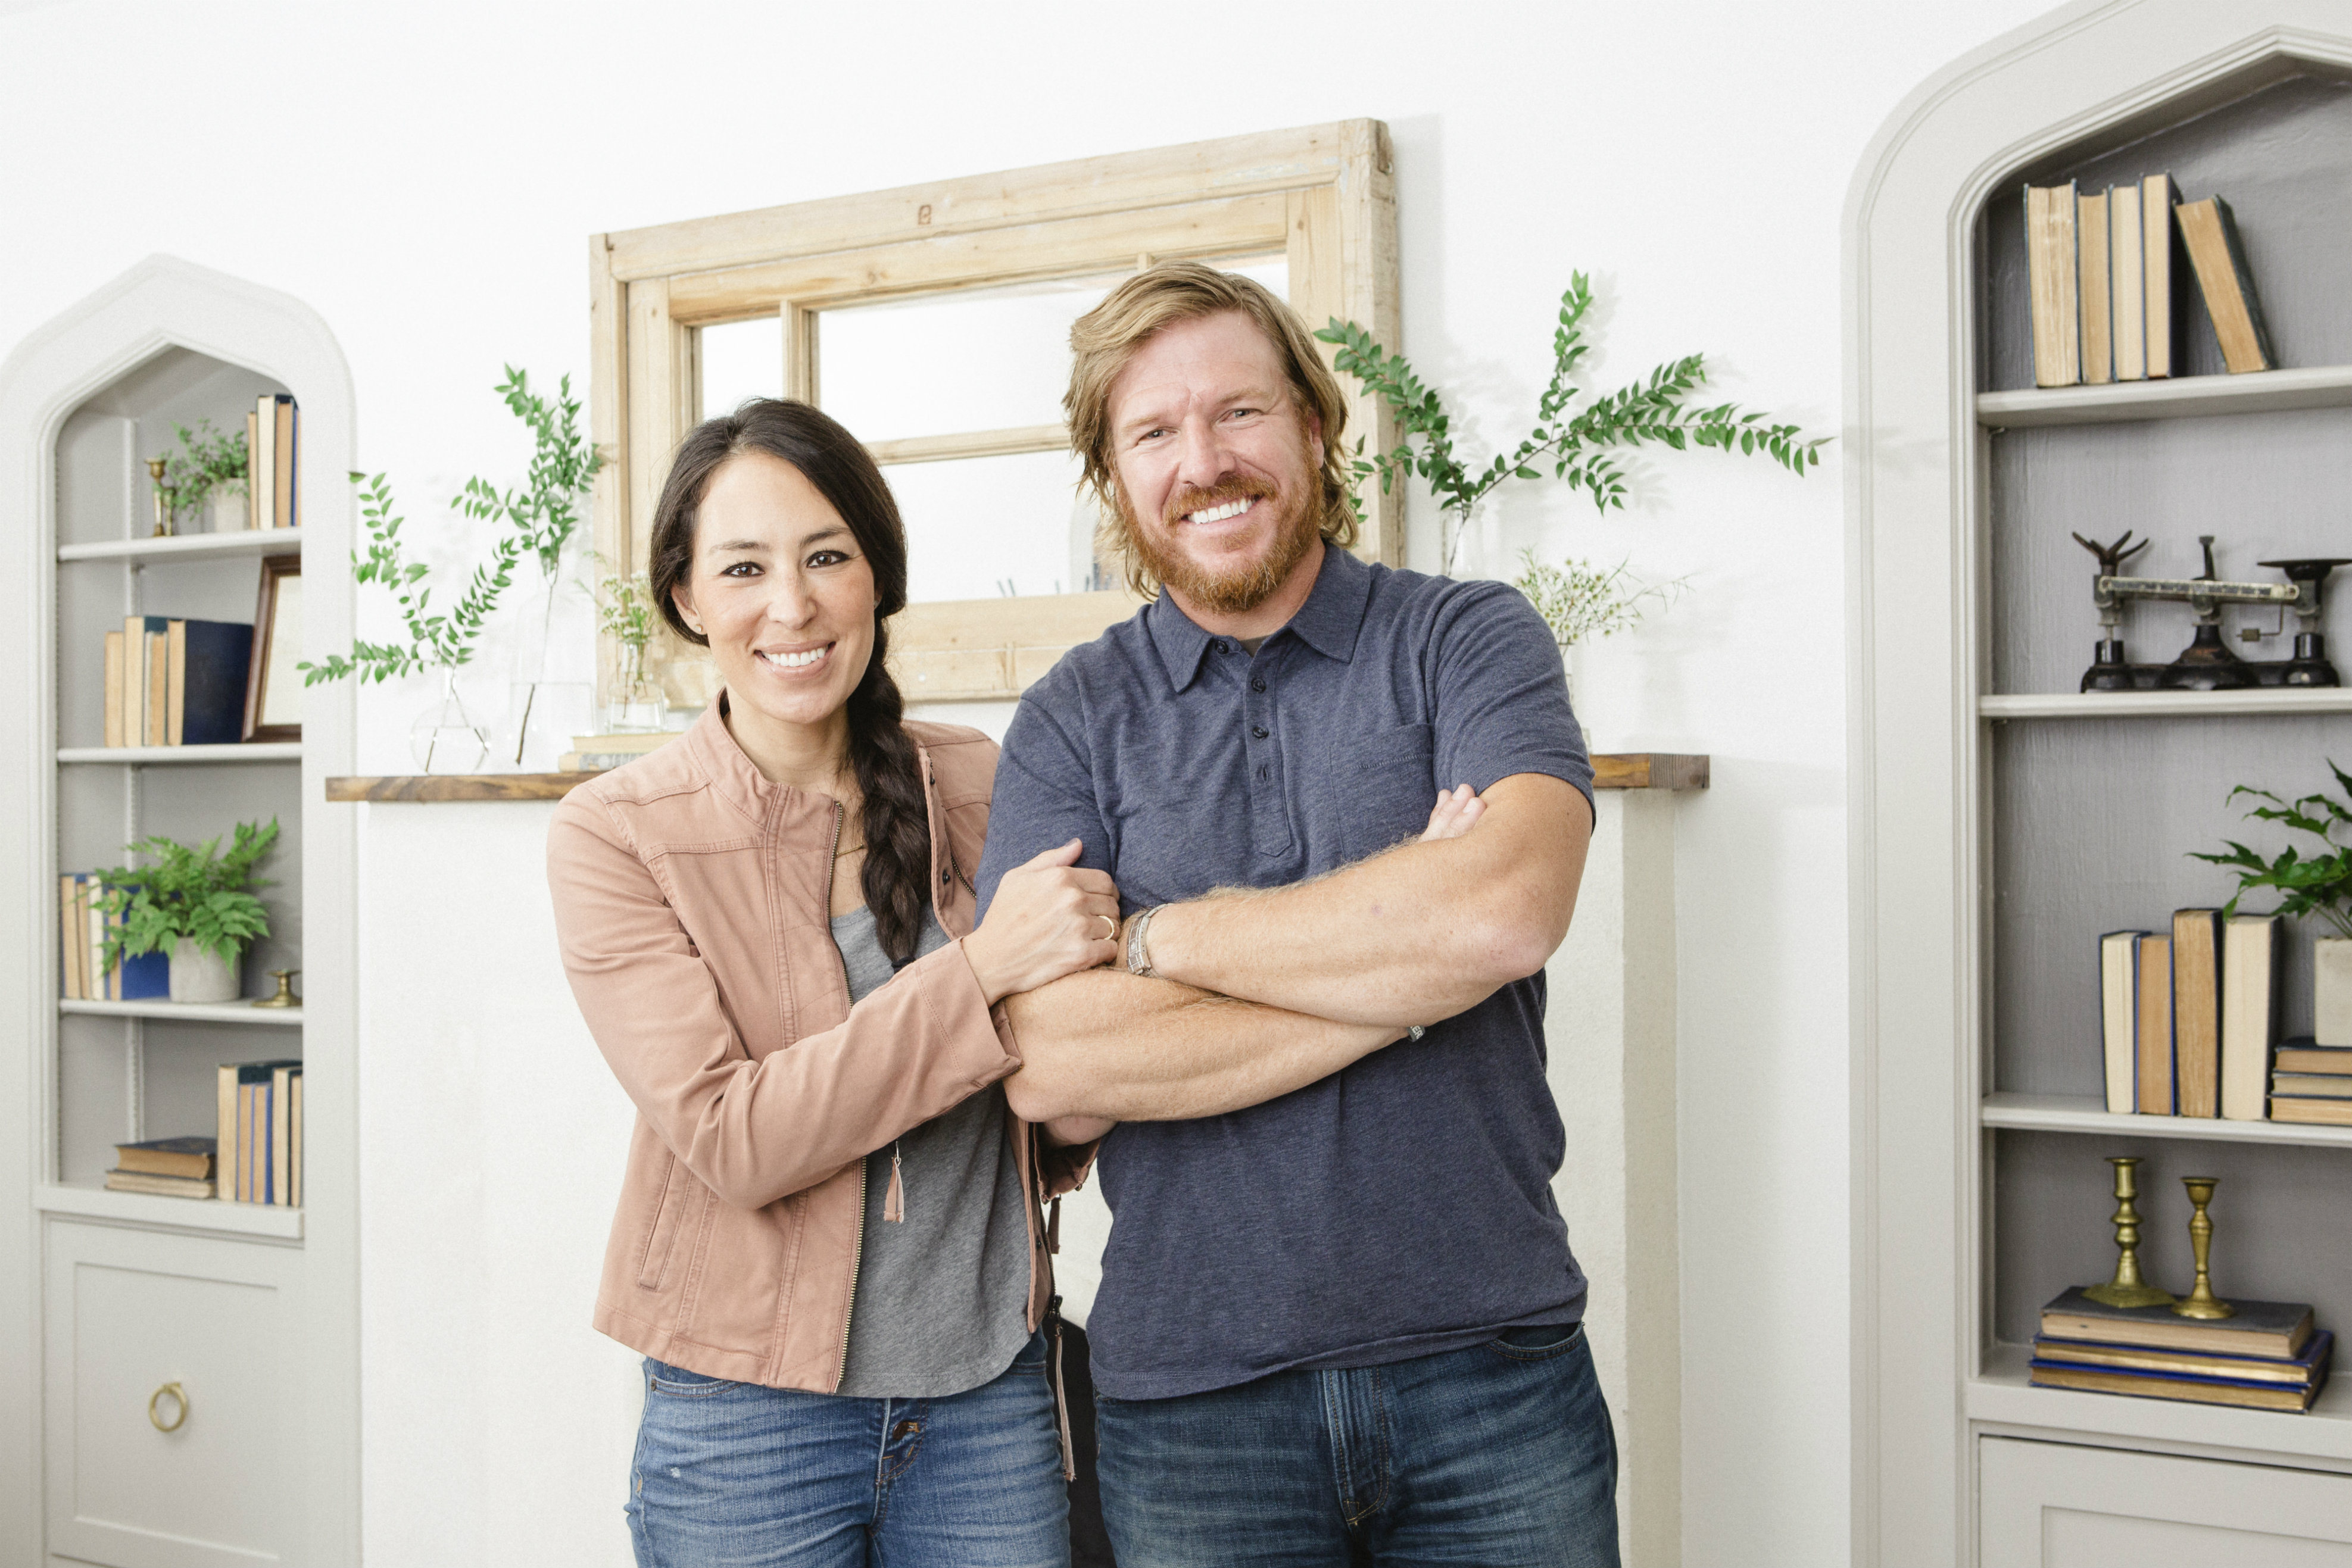 Hgtv Stars Chip And Joanna Gaines Return For Season Five Of Fixer Upper On Tuesday November 21 At 9 P M Et Pt Business Wire